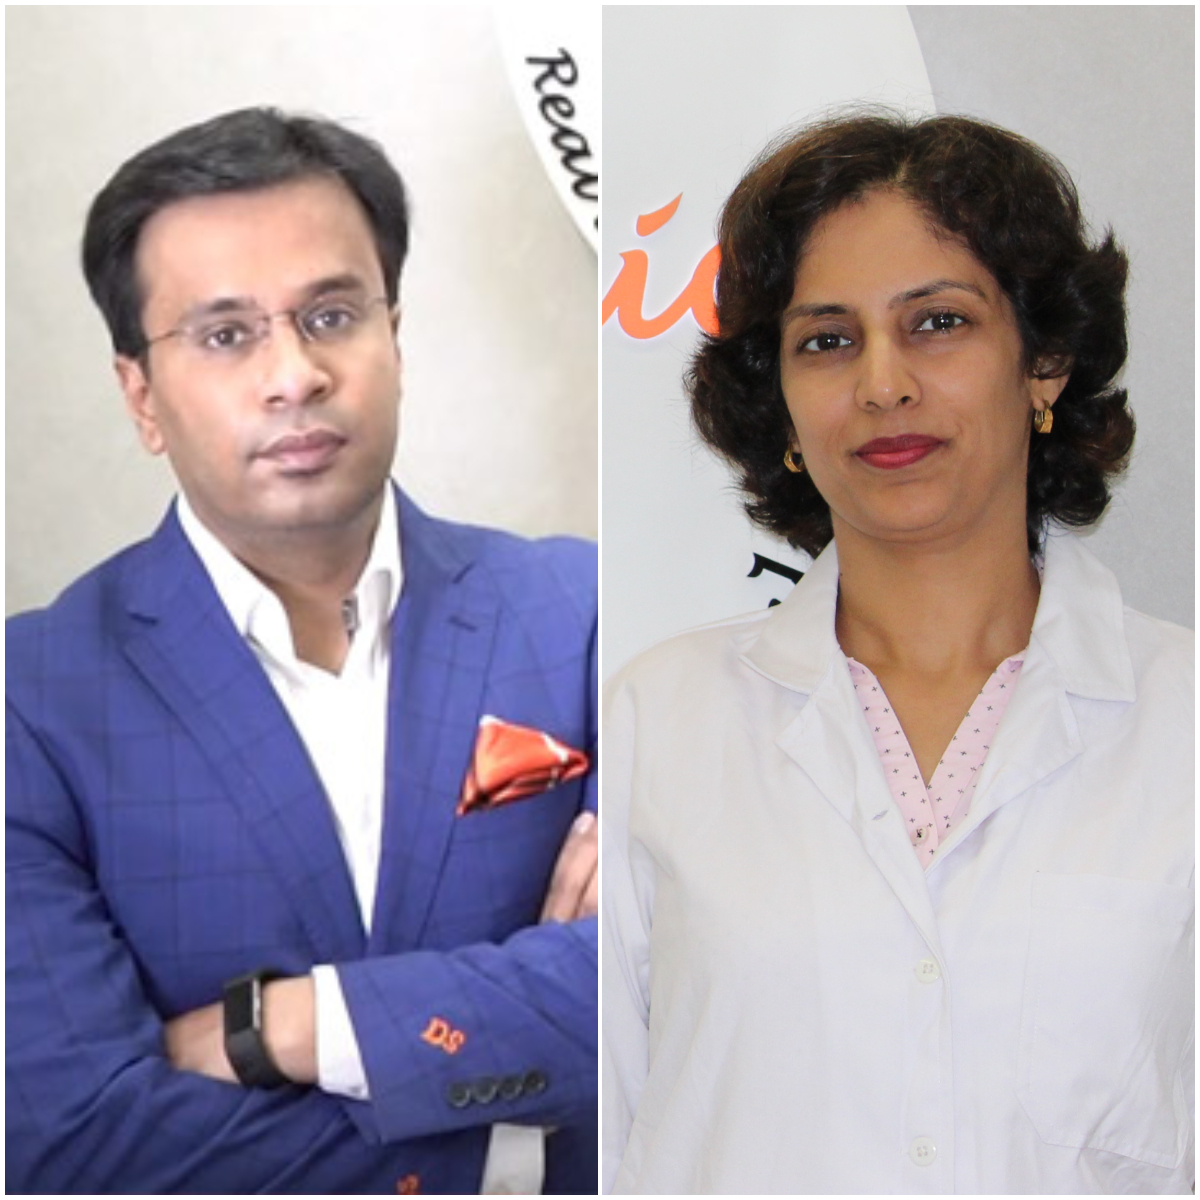 Dr Debraj Shome and Dr. Rinky Kapoor is the inventor of QR678